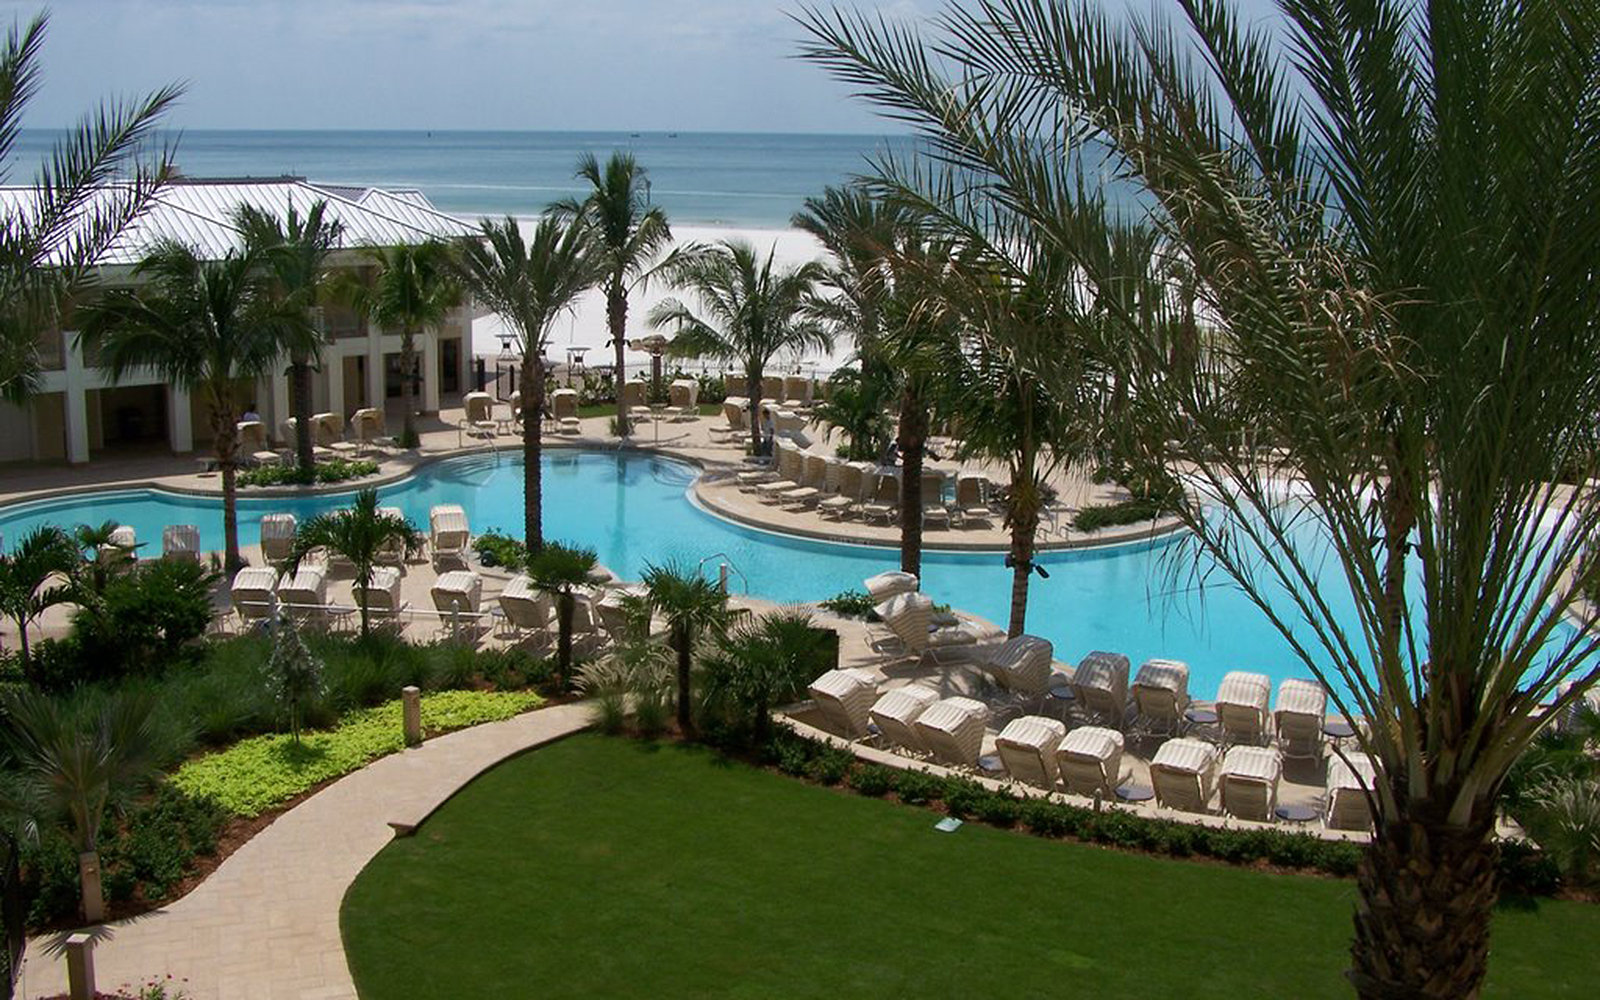 No. 3 Sandpearl Resort, Clearwater Beach, Florida